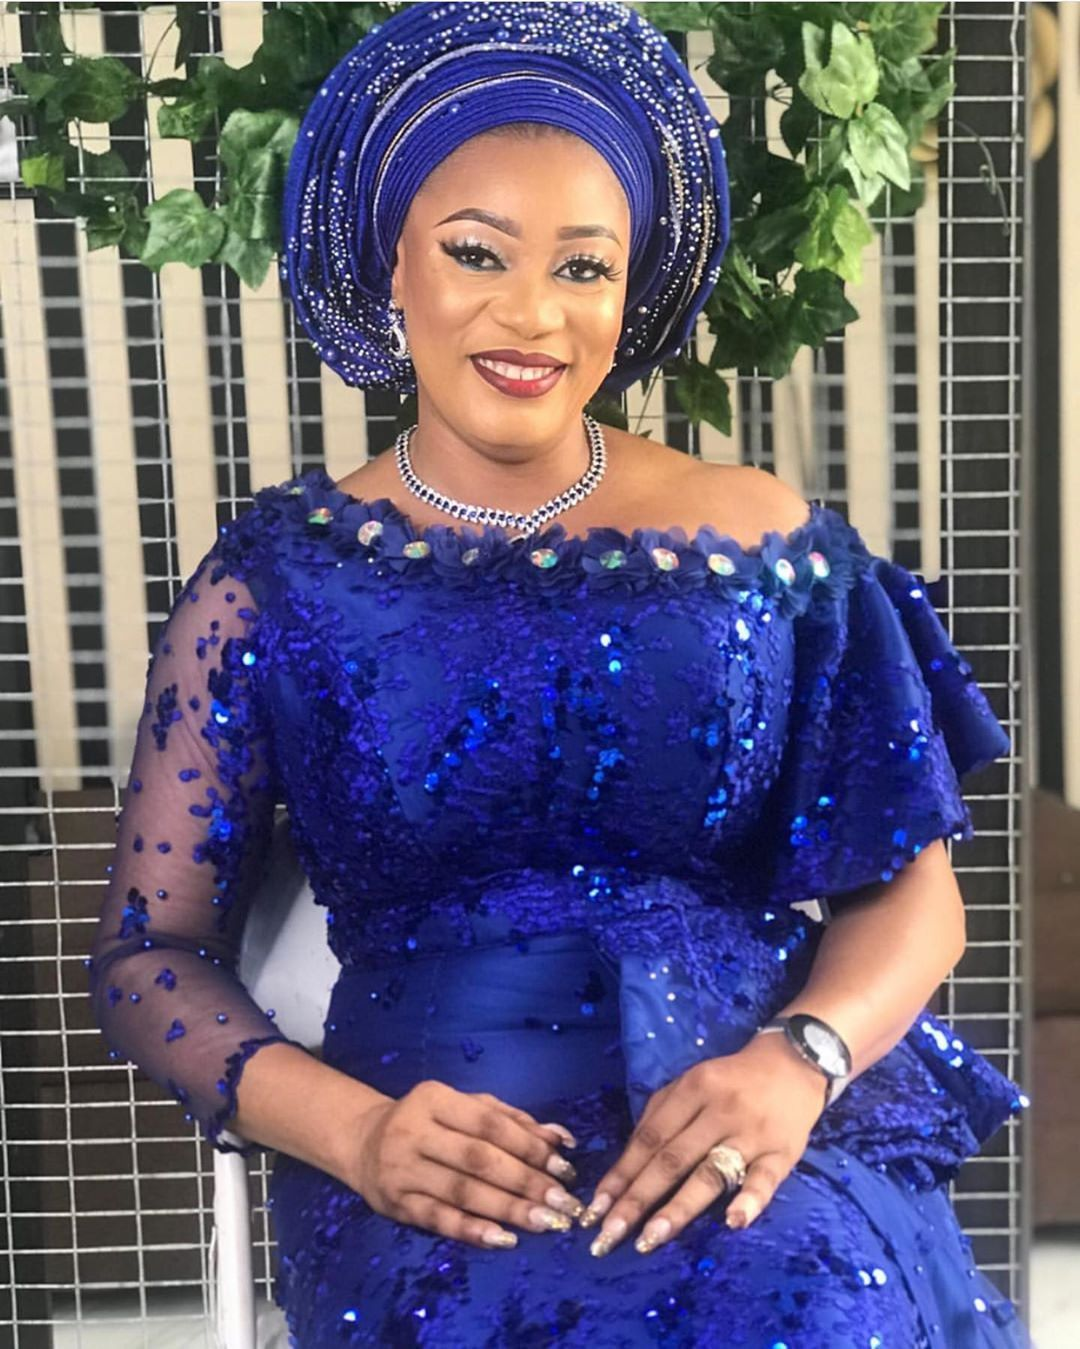 T N S Beautiful Tolulopeibironke Celebrating Beautiful Successful And Wonderfully African Lace Styles Nigerian Lace Dress African Fashion Skirts